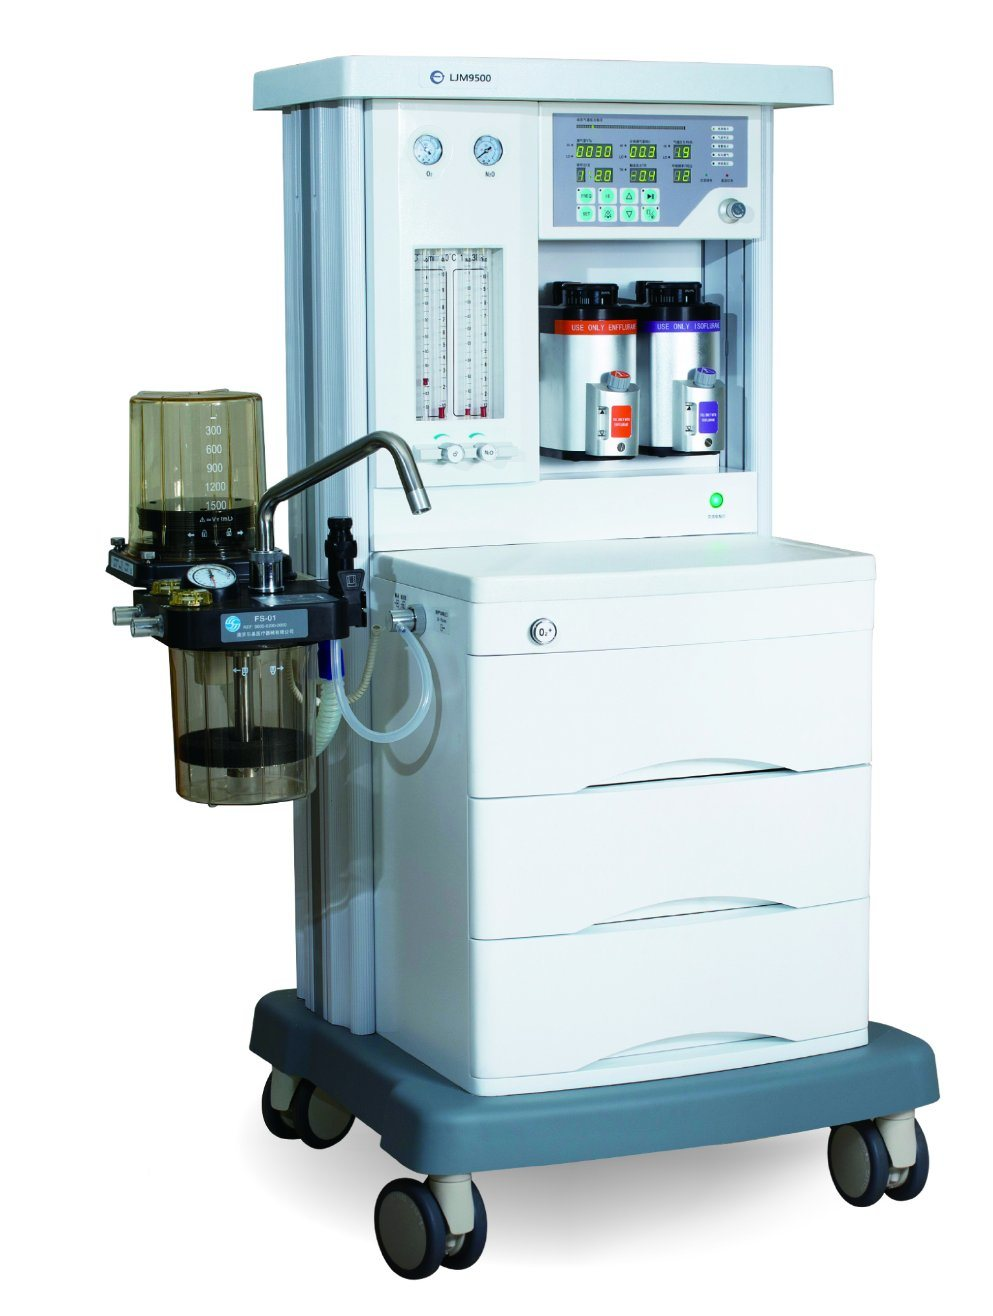 General Medical Anaesthesia/Anesthesia Machine Ljm9500 with Ce Certificate